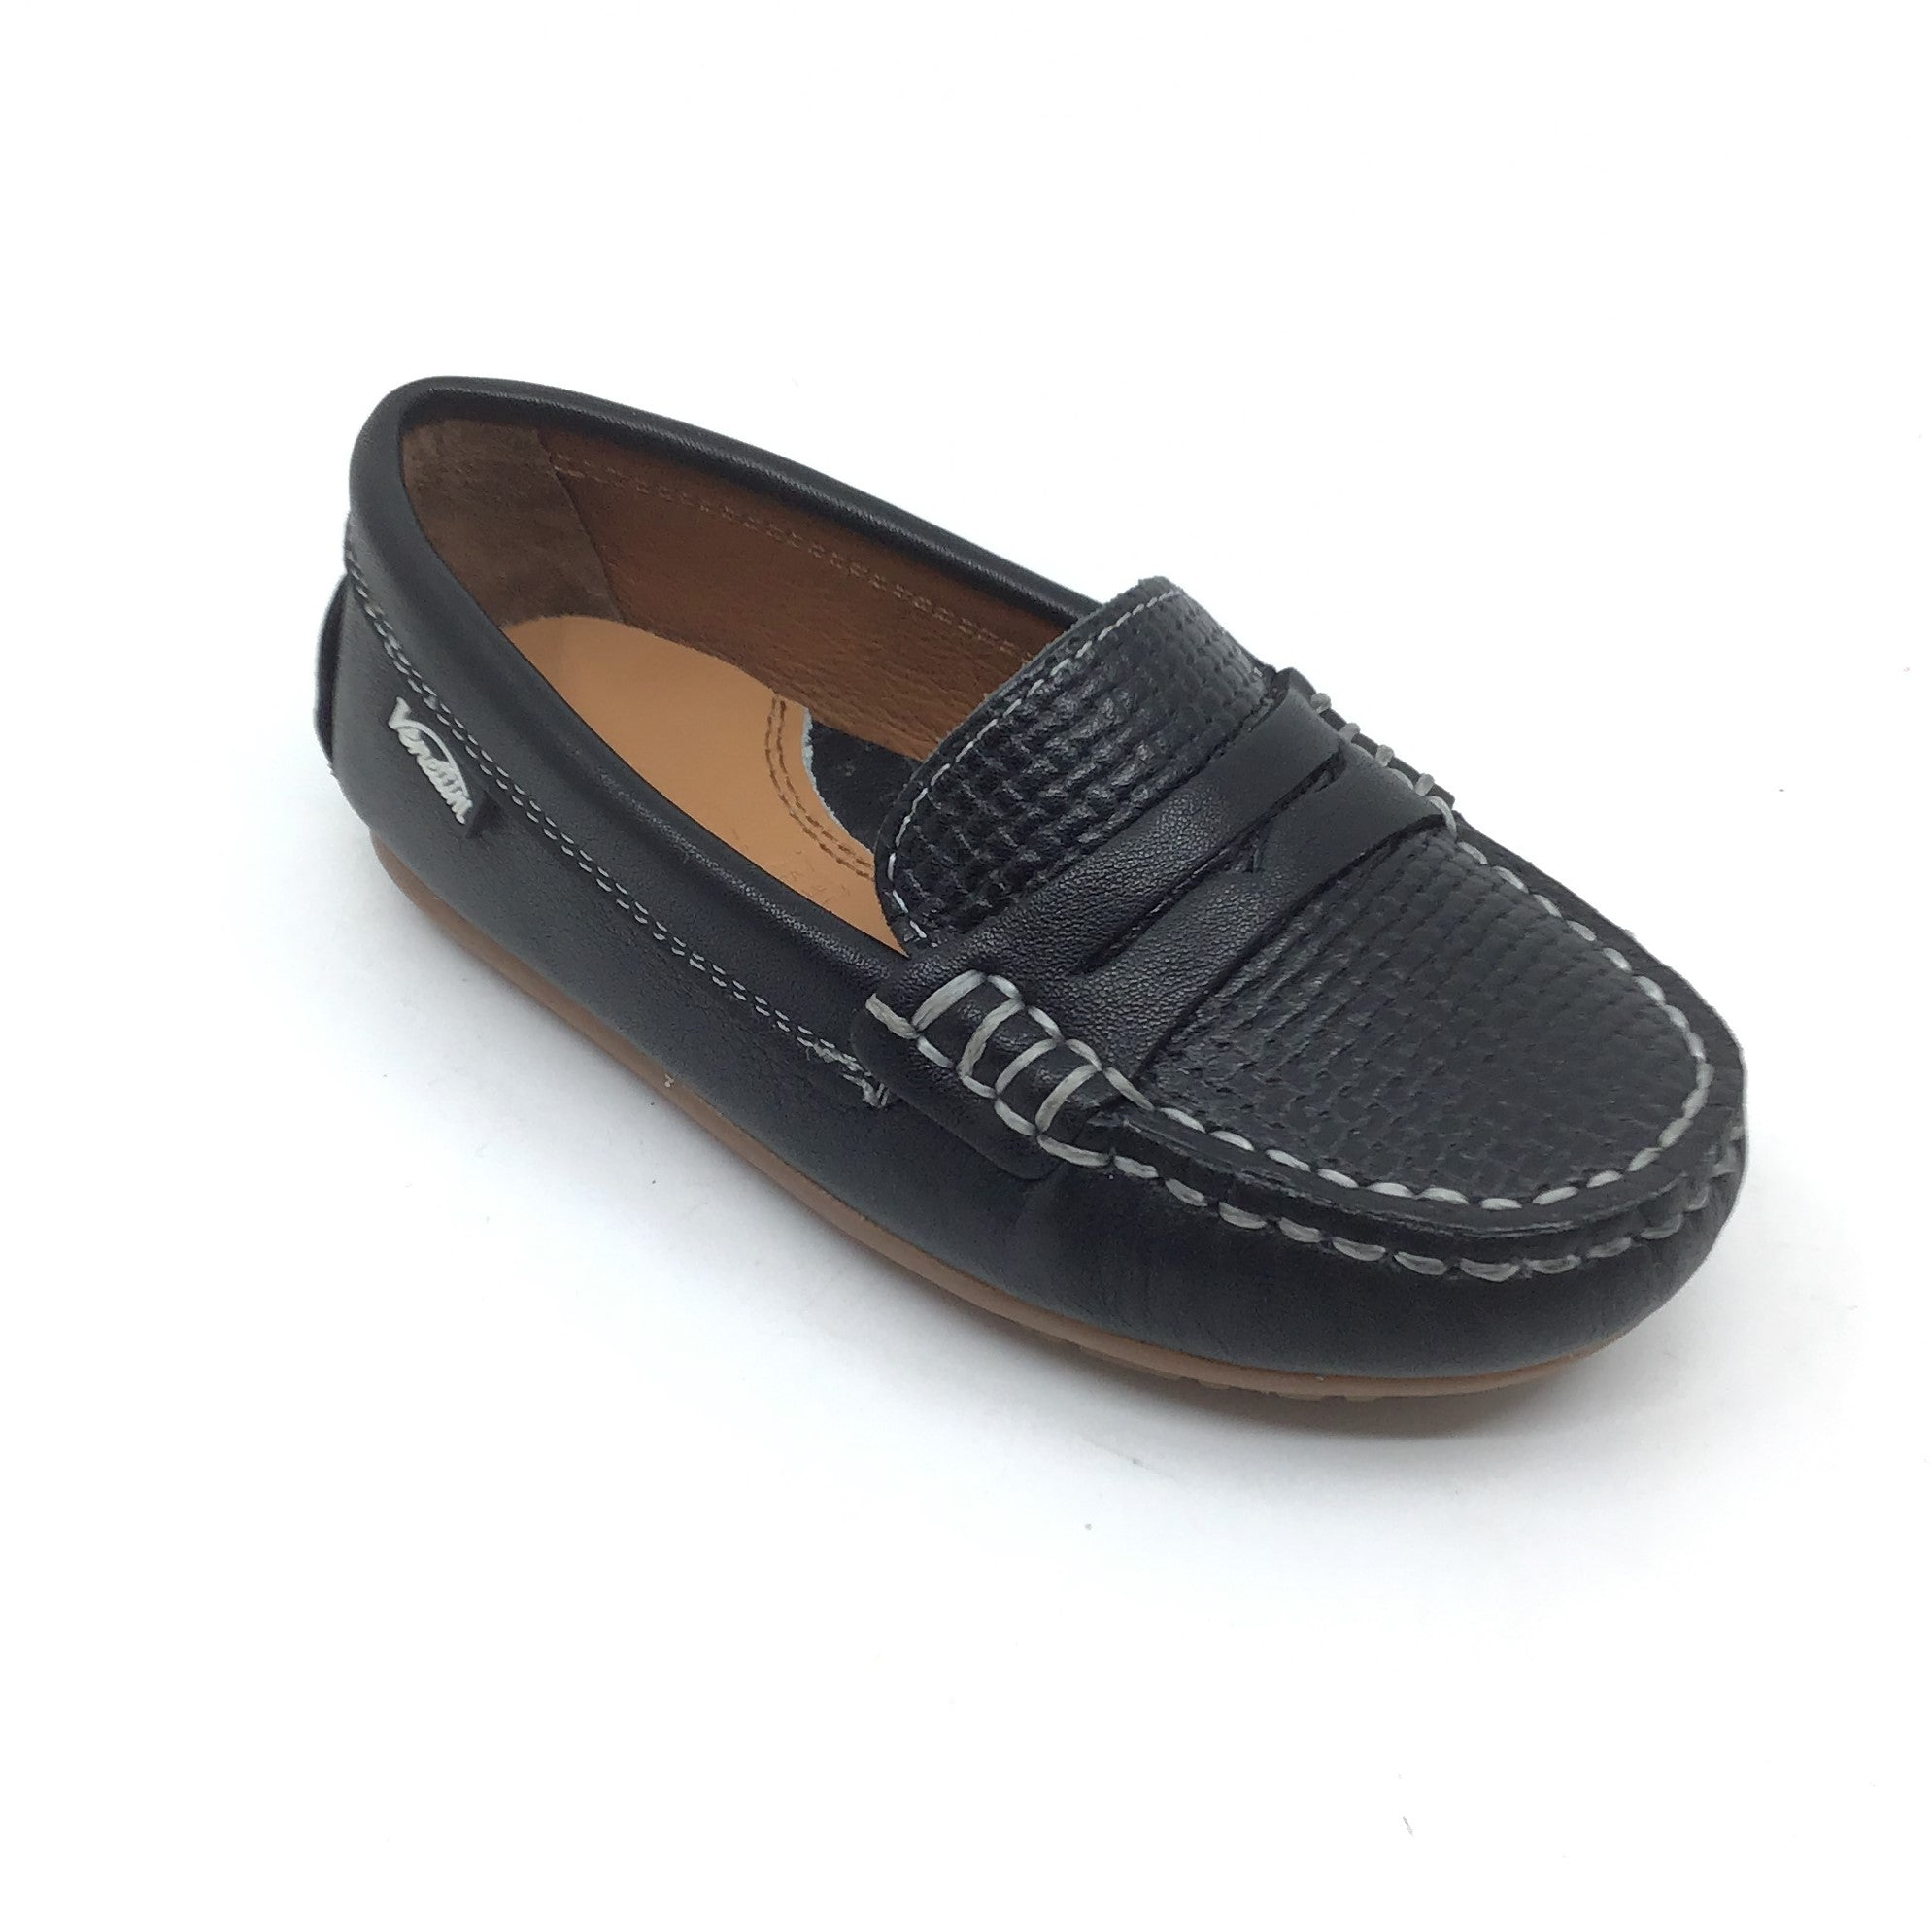 Venettini Black Penny Loafer with Front Texture